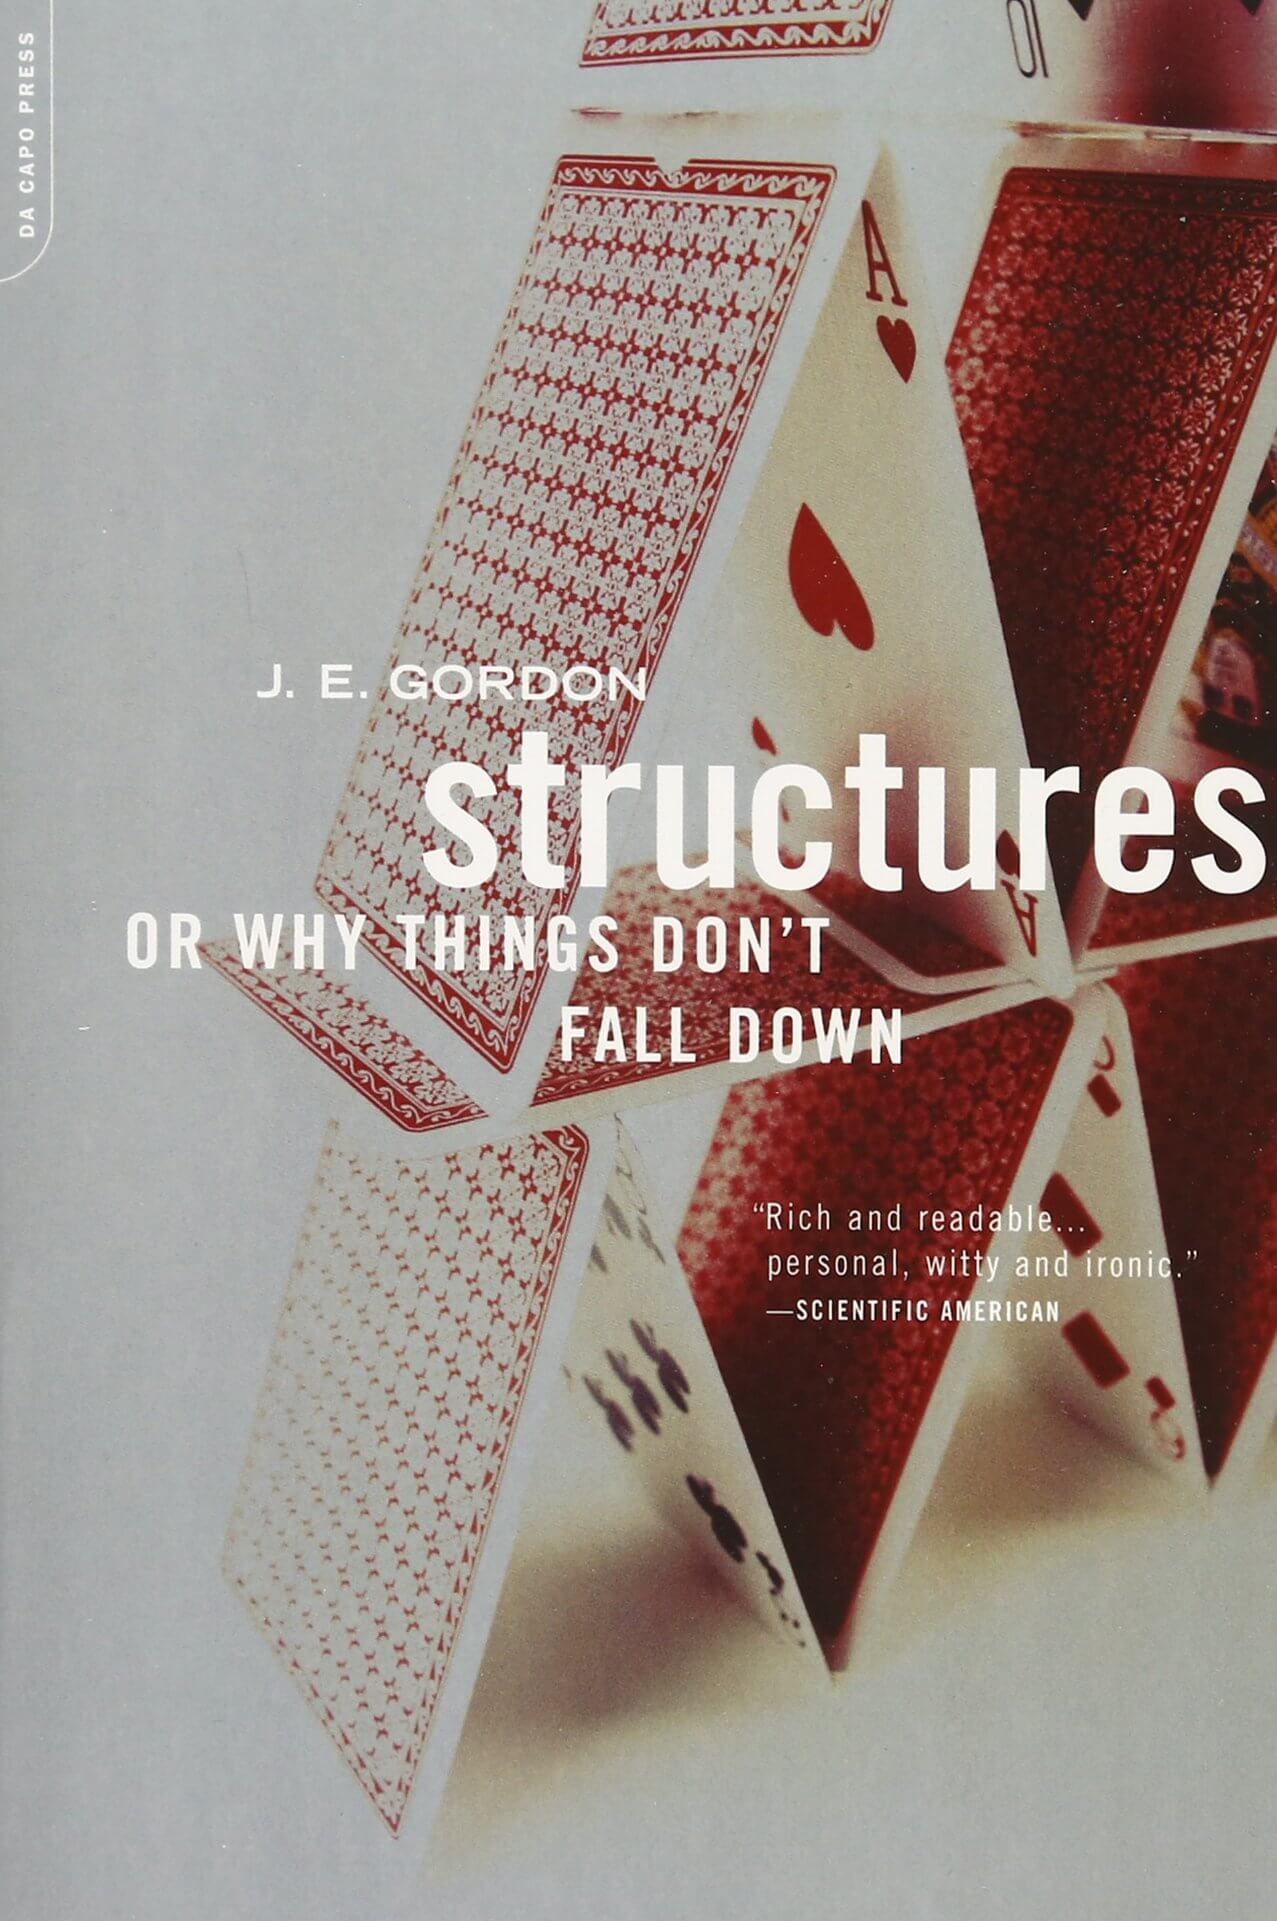 Book: Structures: Or Why Things Don't Fall Down by J. E. Gordon